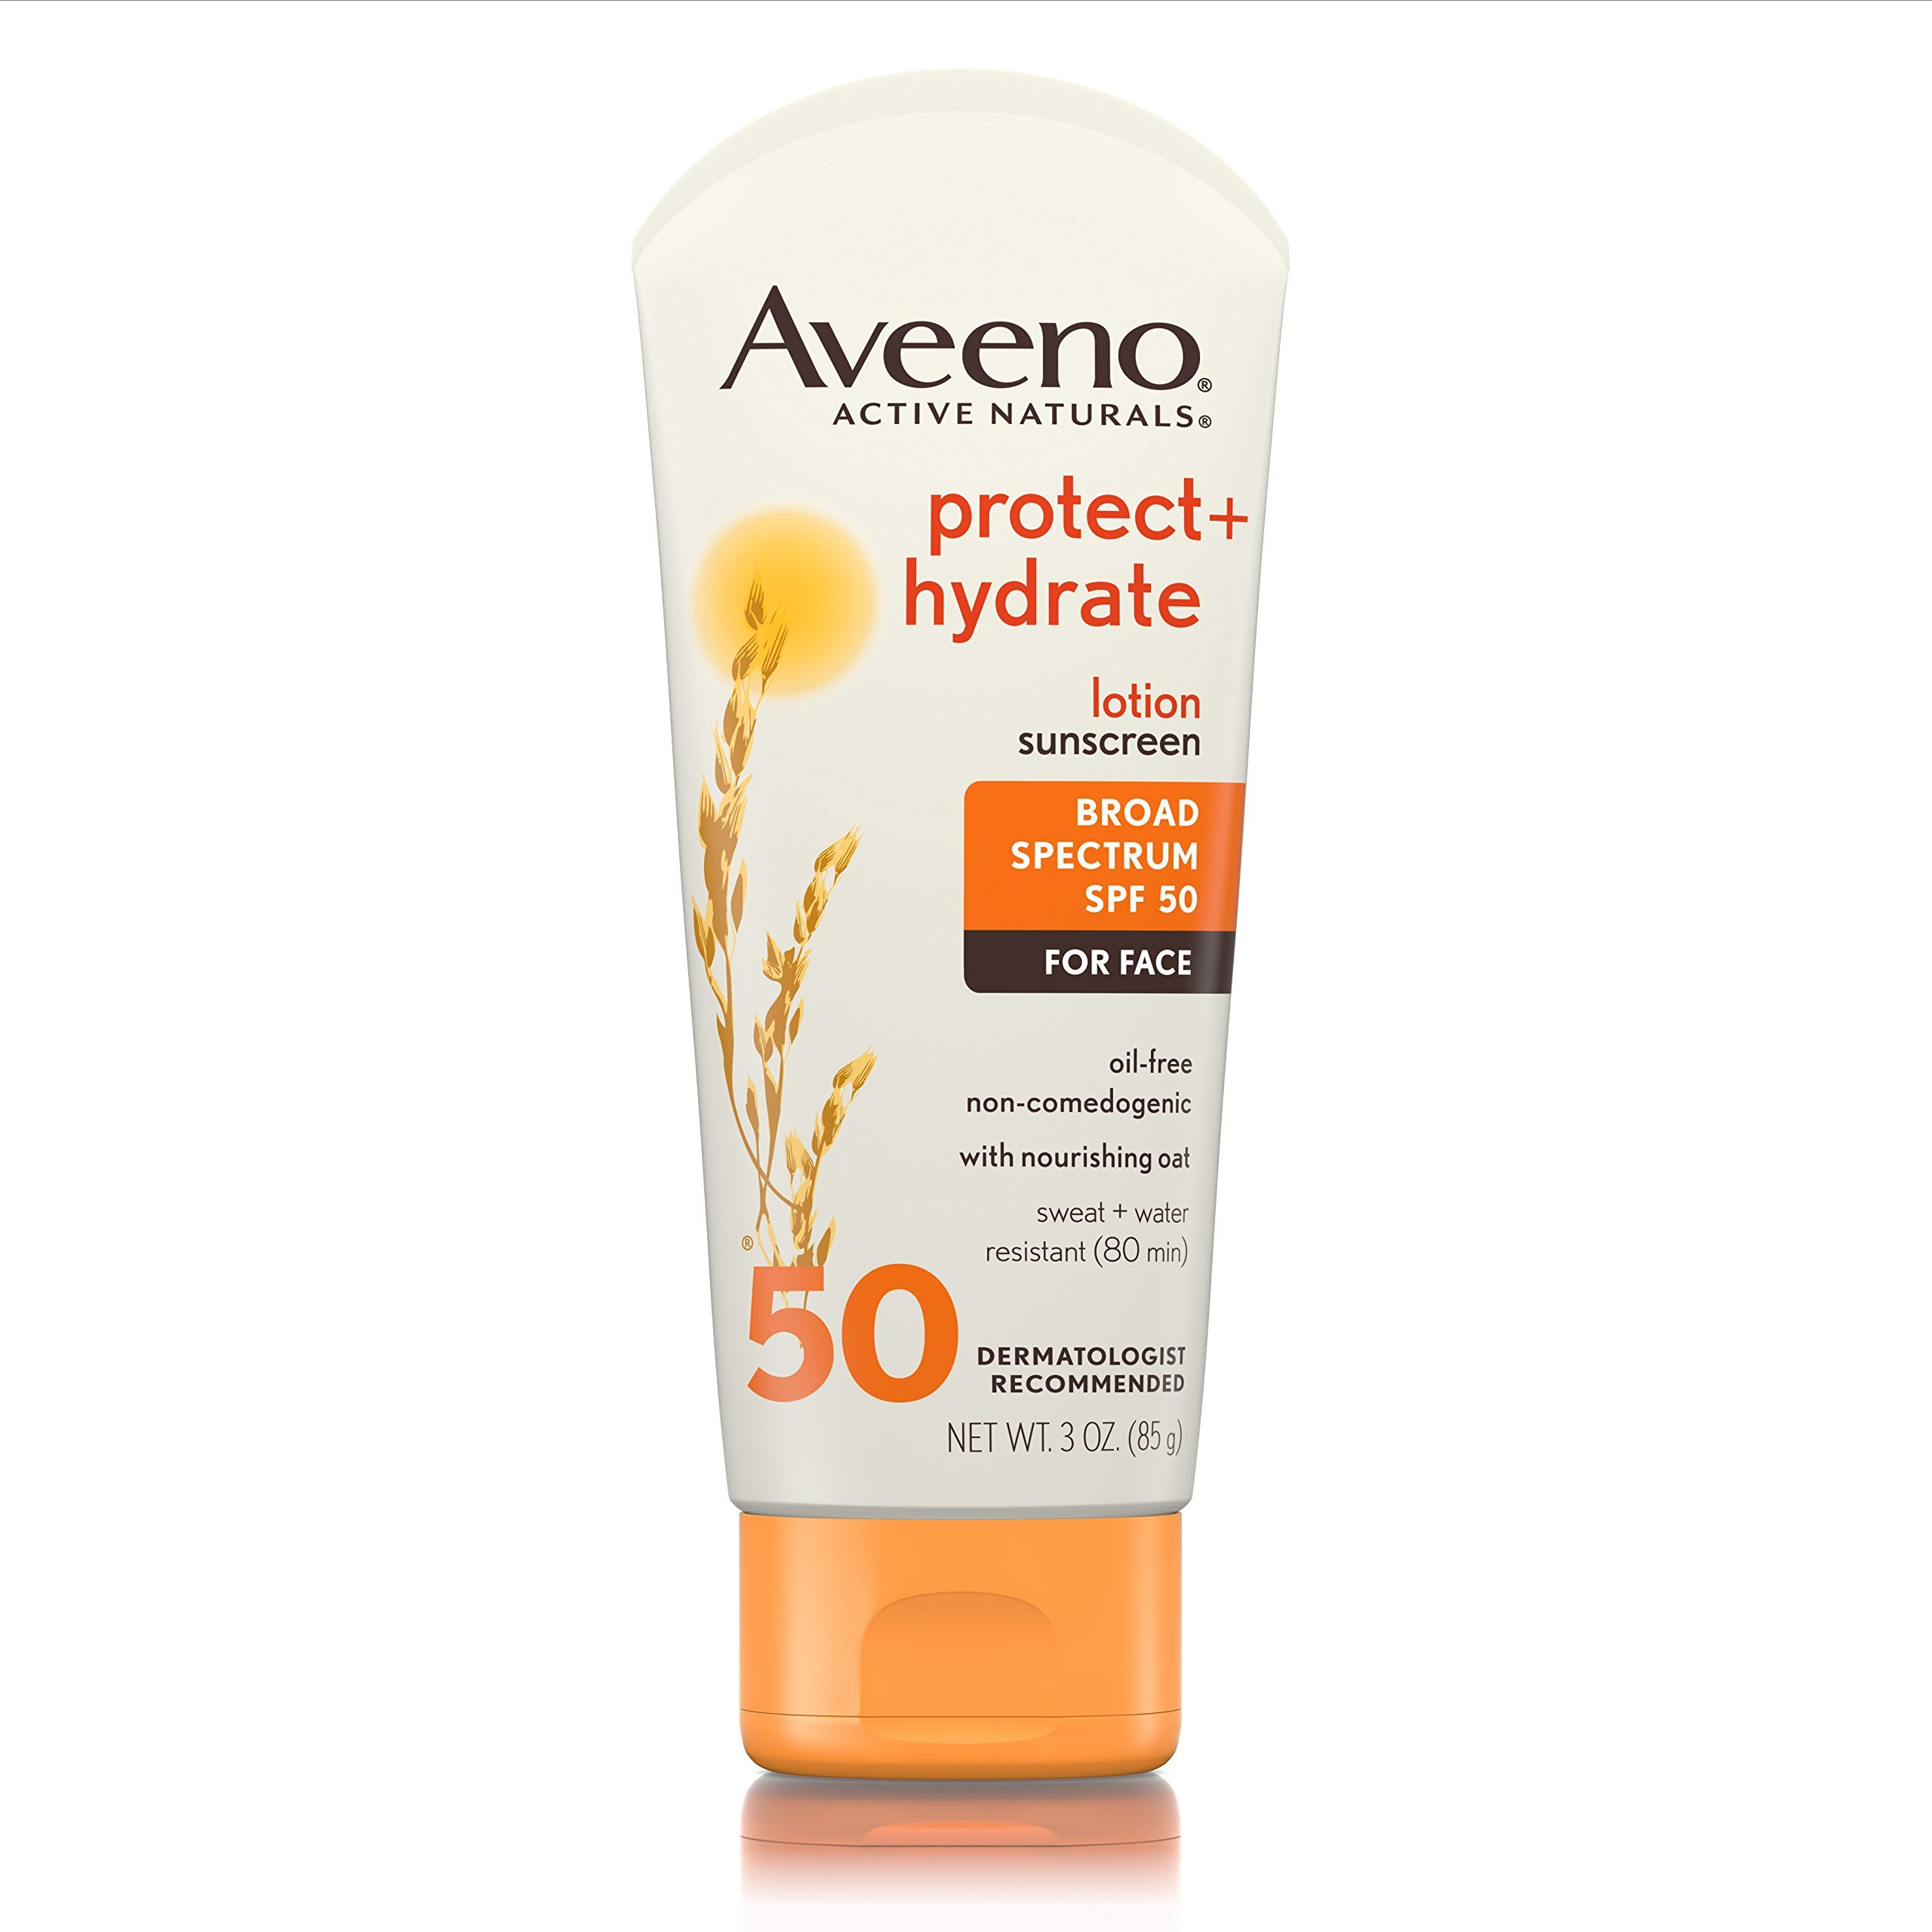 Aveeno Protect + Hydrate Face Sunscreen with Active Naturals Oat, Broad Spectrum SPF 50, Sweat and Water Resistant Sun Protection, 3 oz